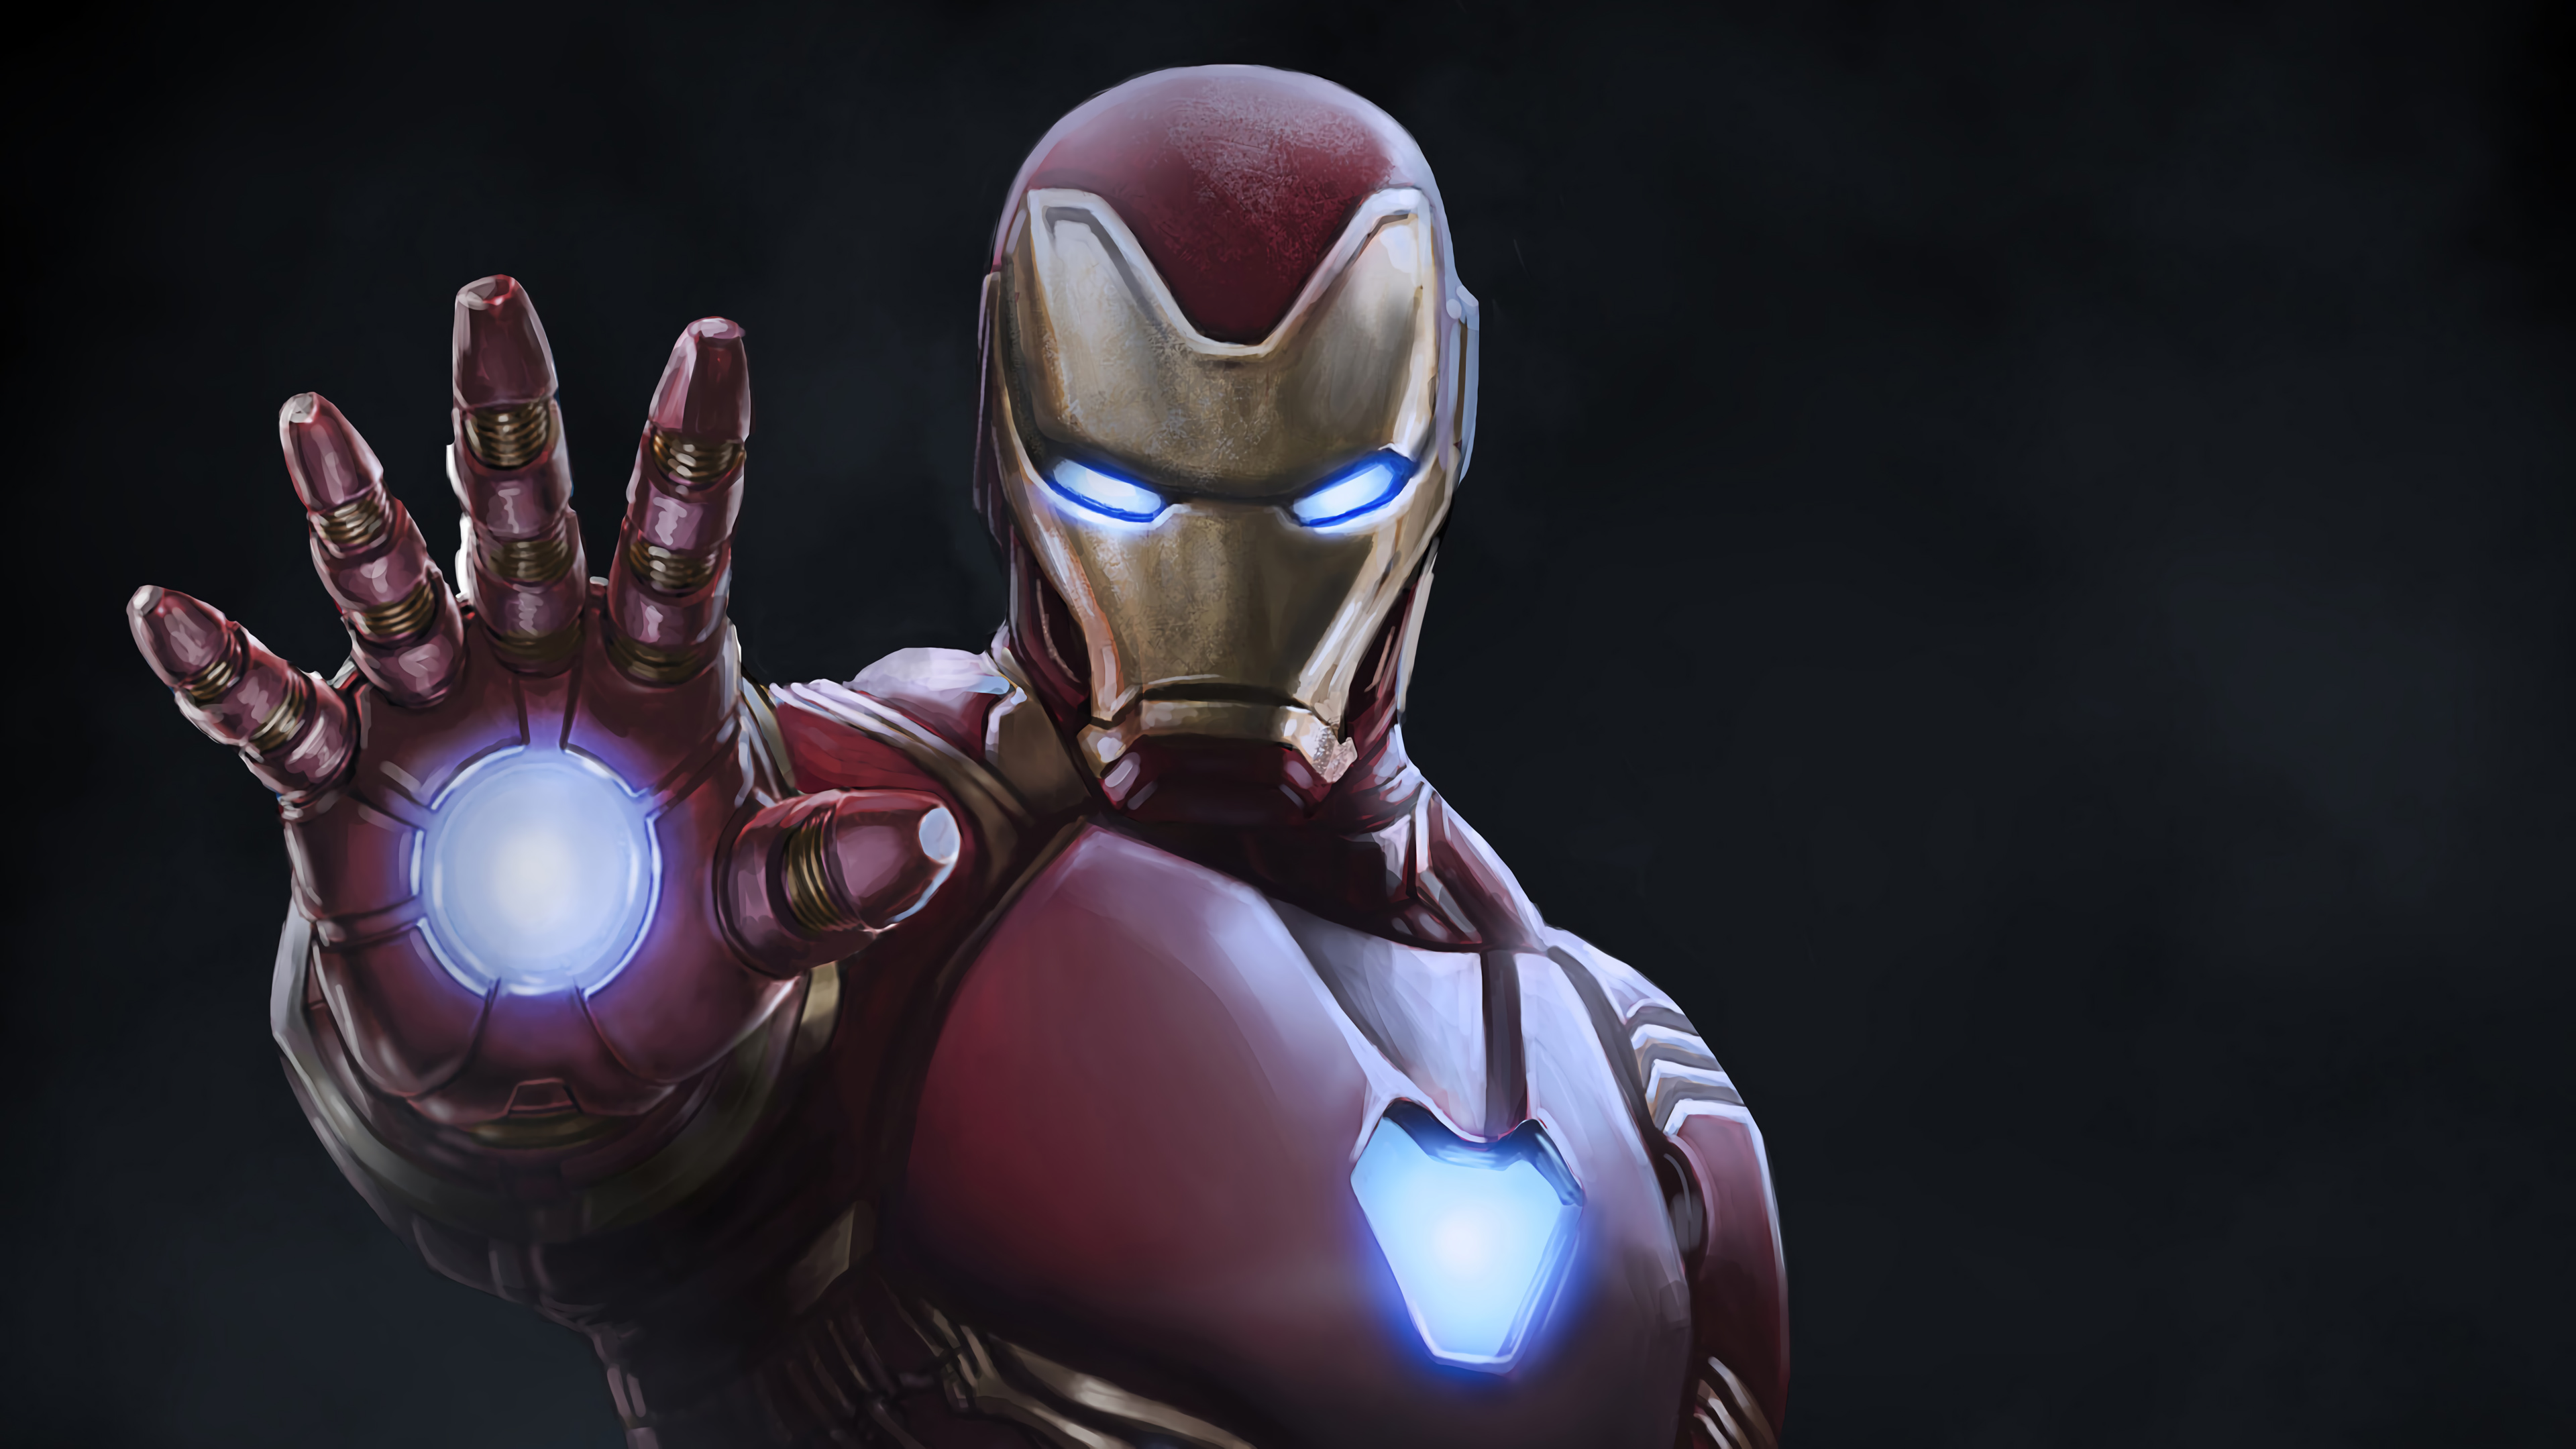 iron man newart 1568054084 - Iron Man Newart - superheroes wallpapers, iron man wallpapers, hd-wallpapers, digital art wallpapers, artwork wallpapers, 4k-wallpapers